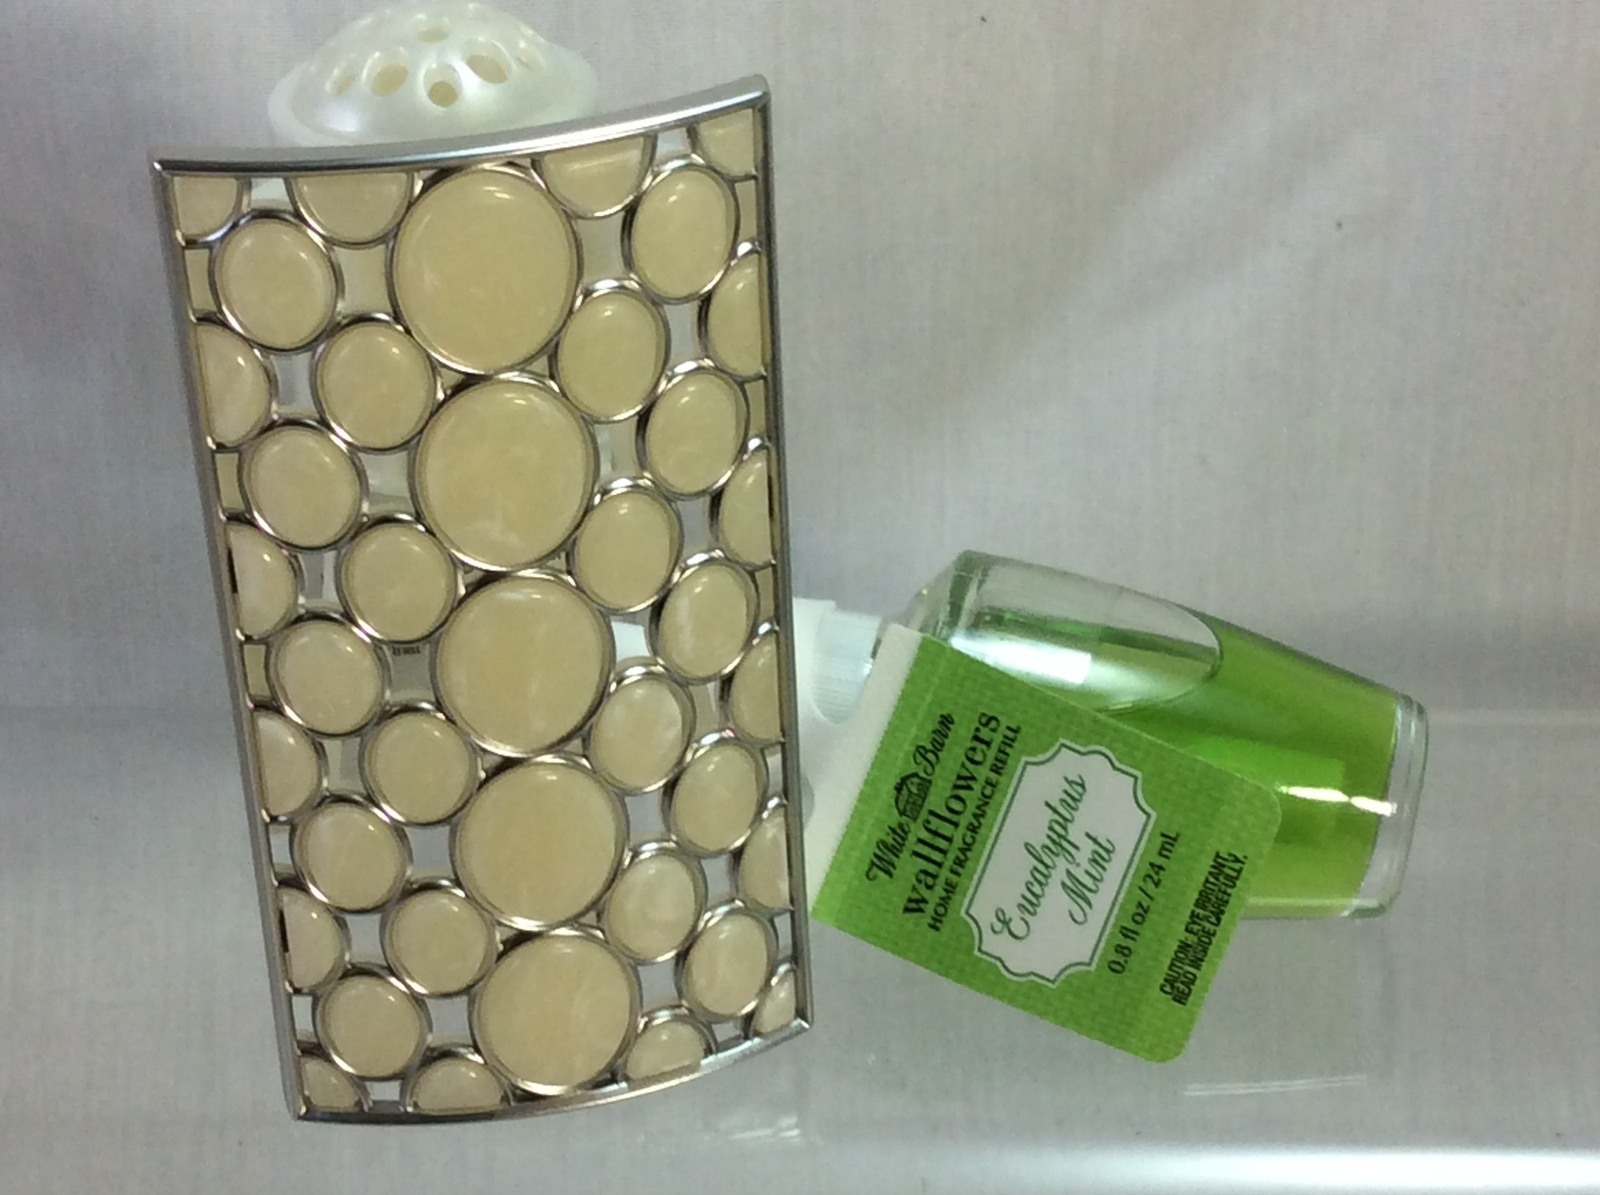 Bath and Body Works Wallflower Shell Design Fragance Plug In and Refill Eucalypt - $17.00